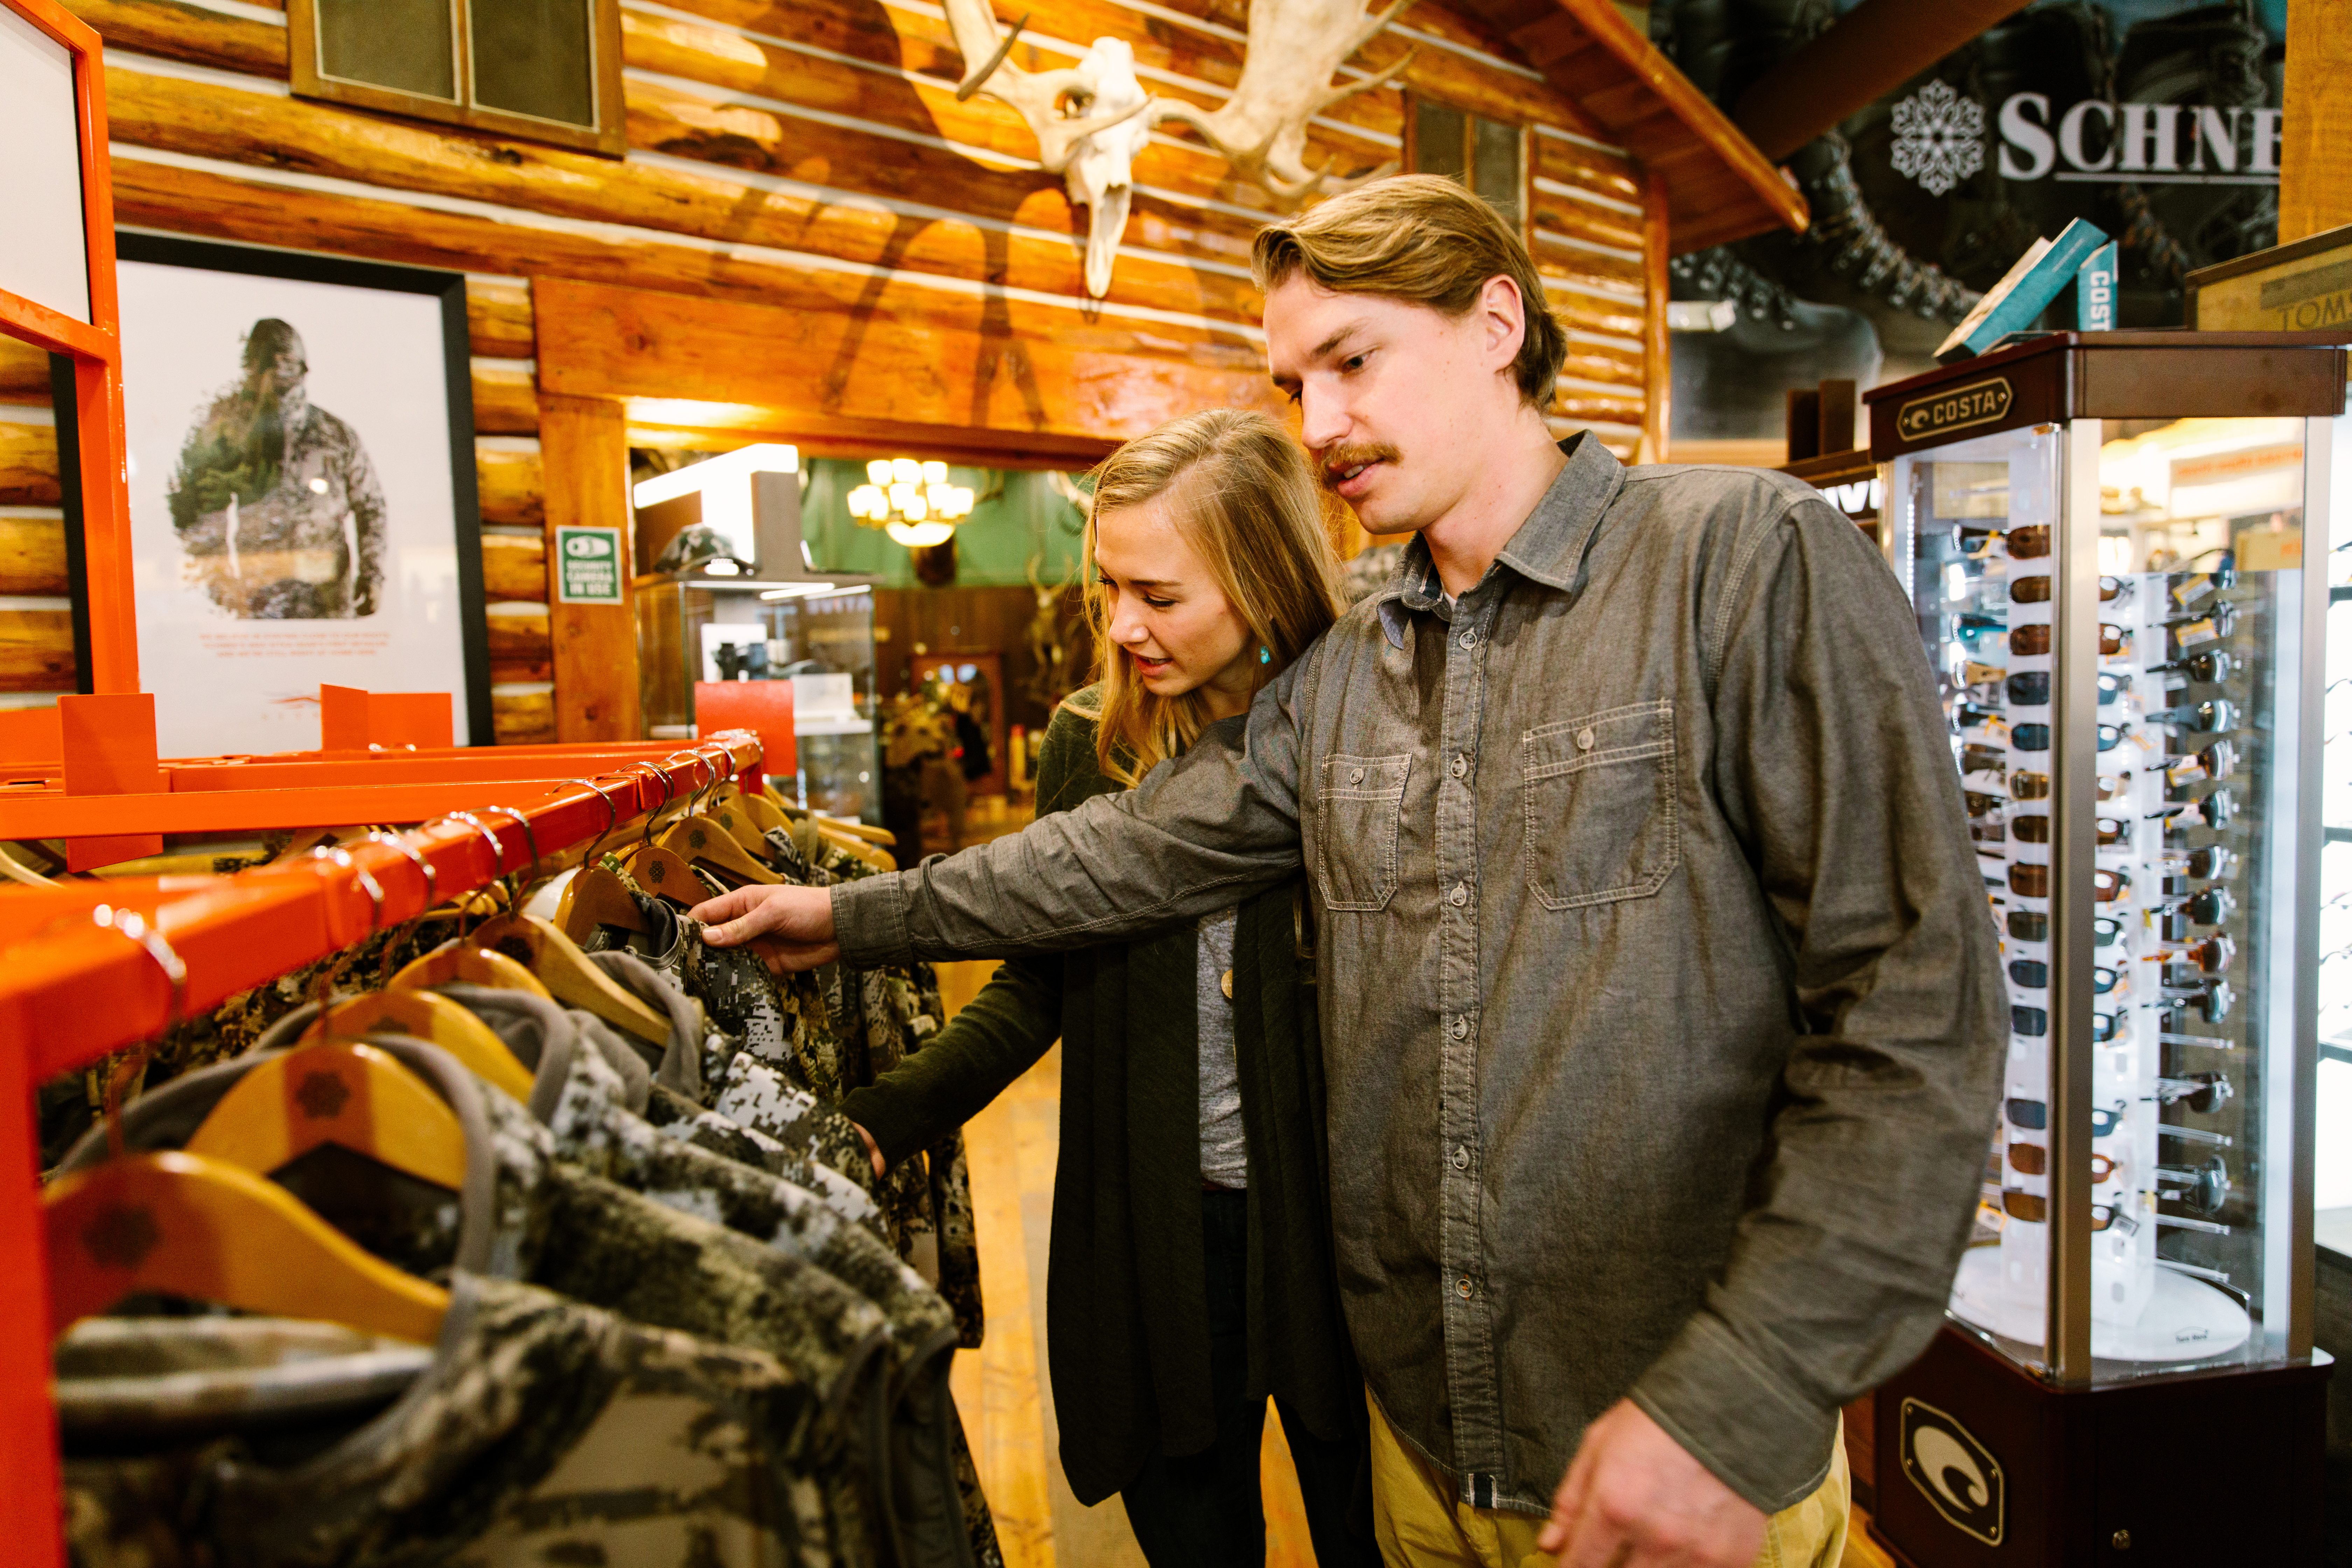 a couple shopping at Schnee's boots in Bozeman